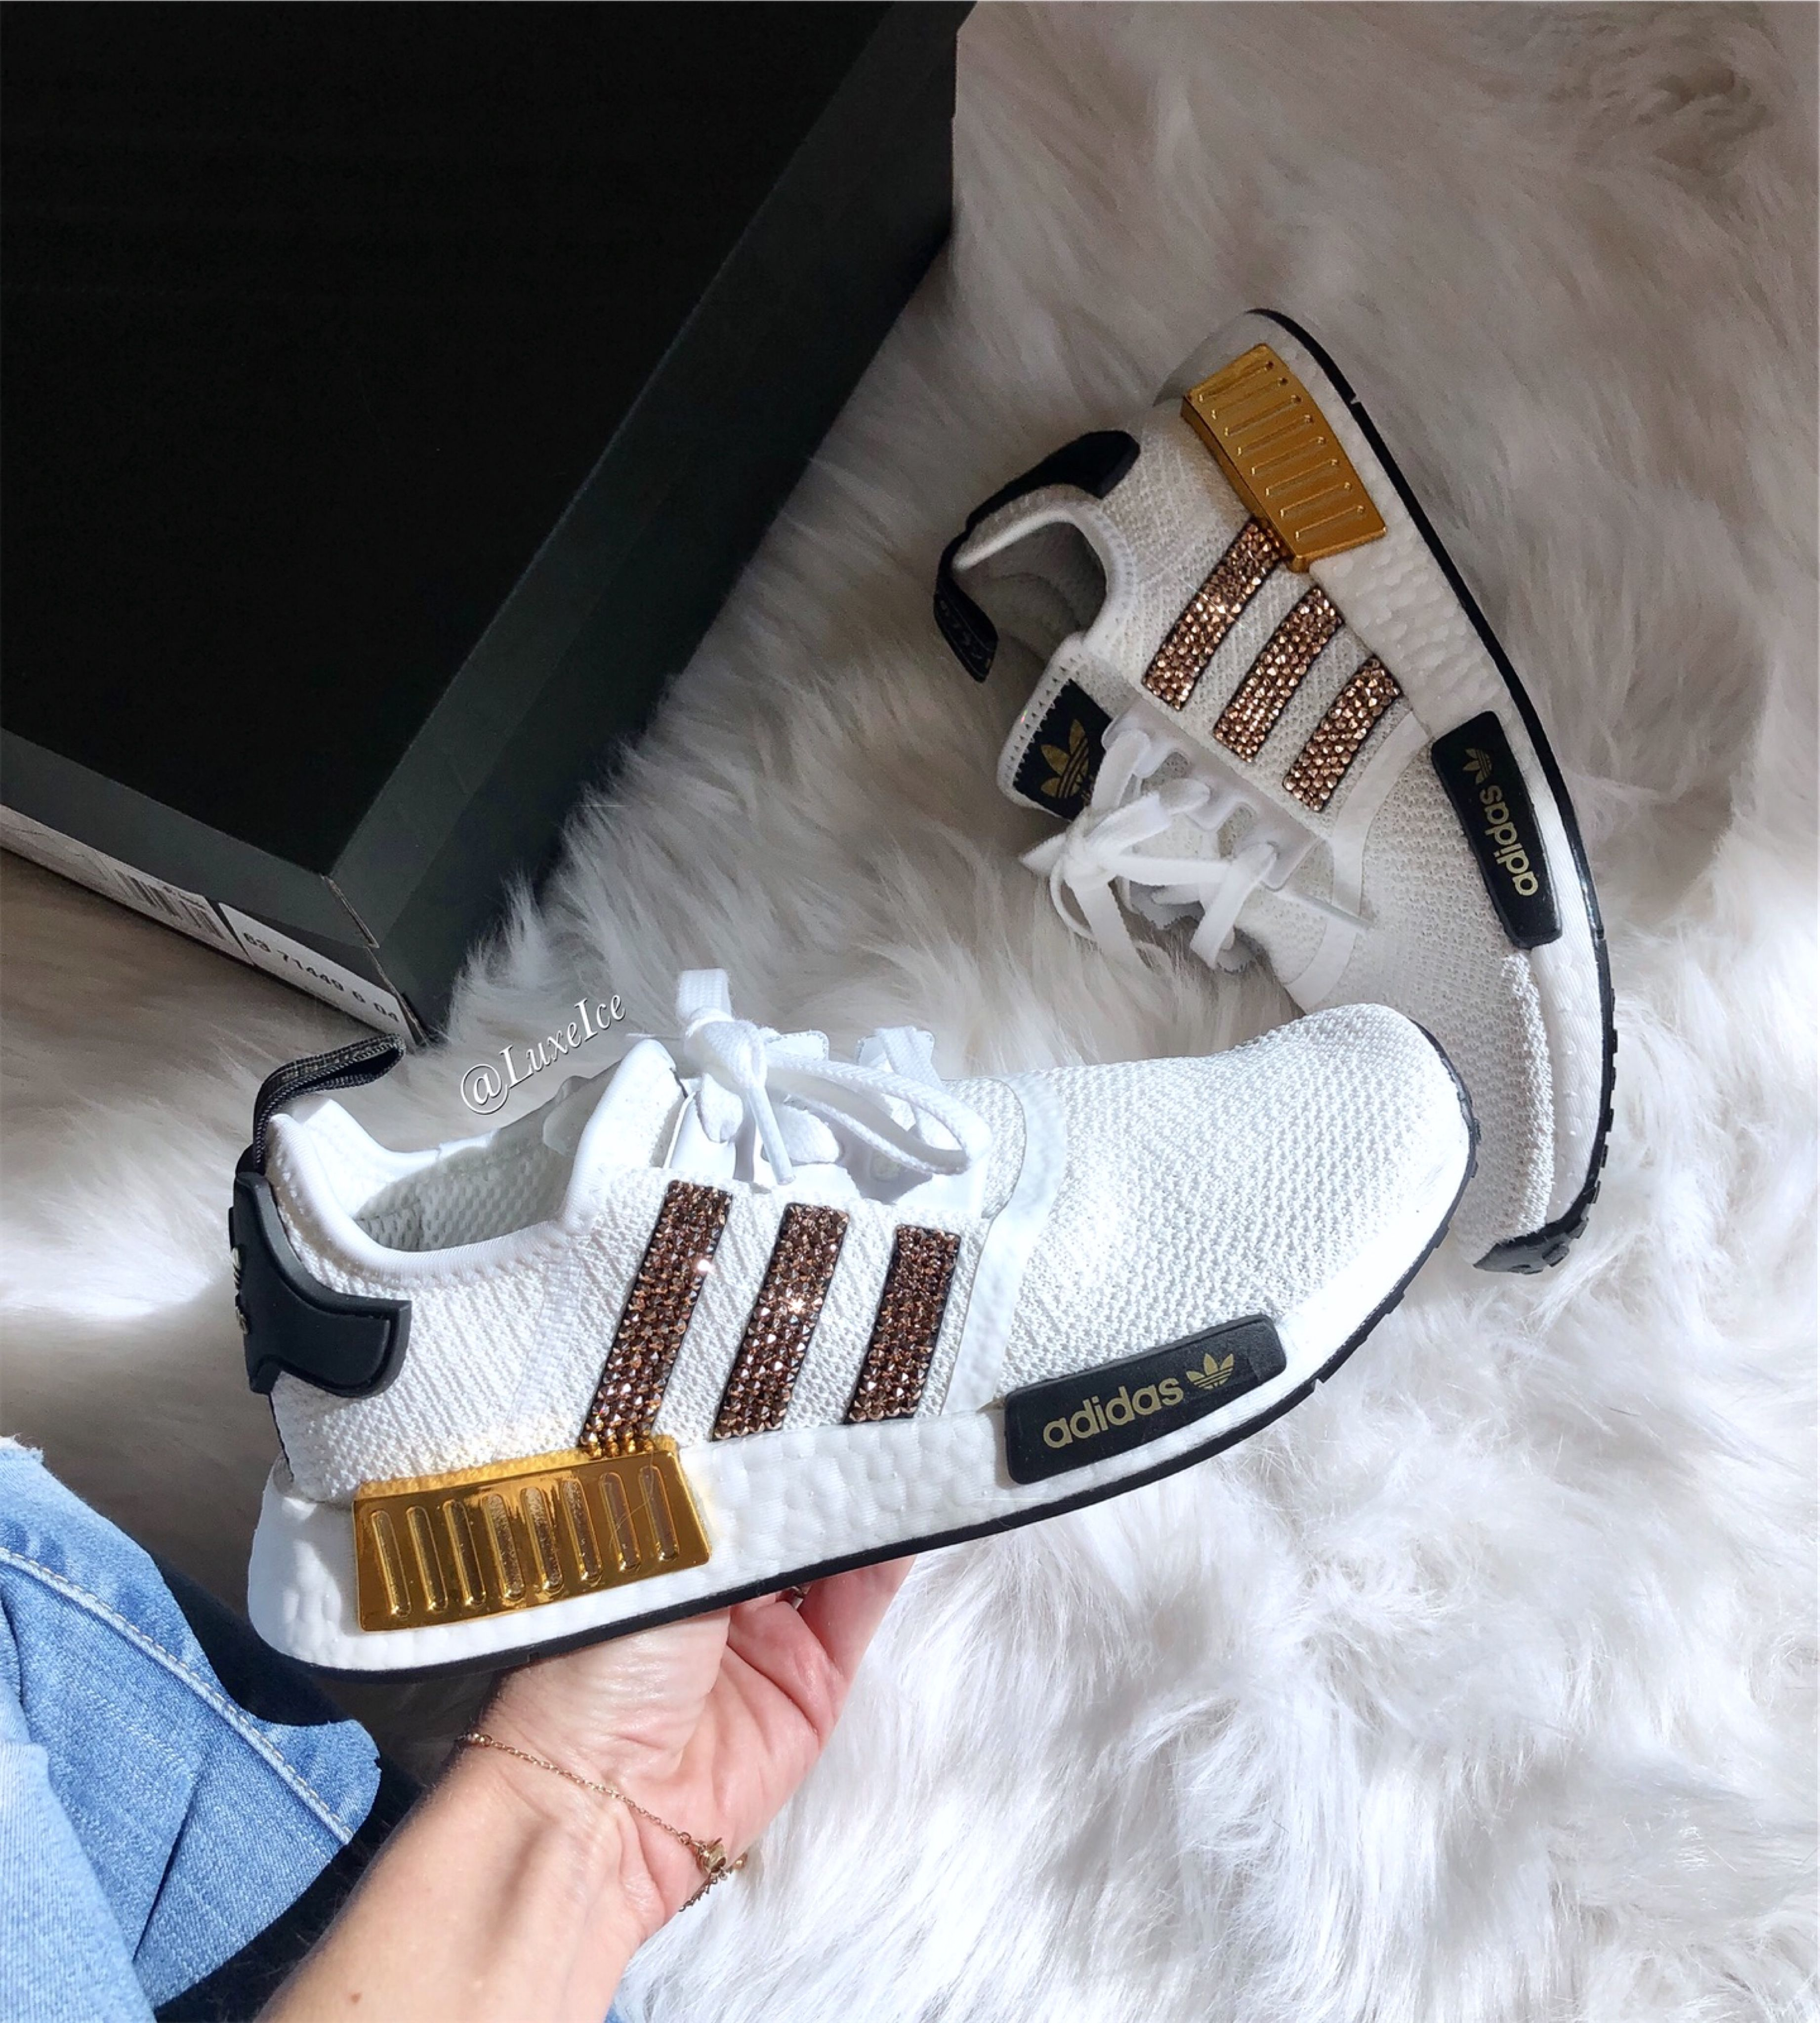 Adidas Nmd Workout Shoes Customized With Swarovski Crystals